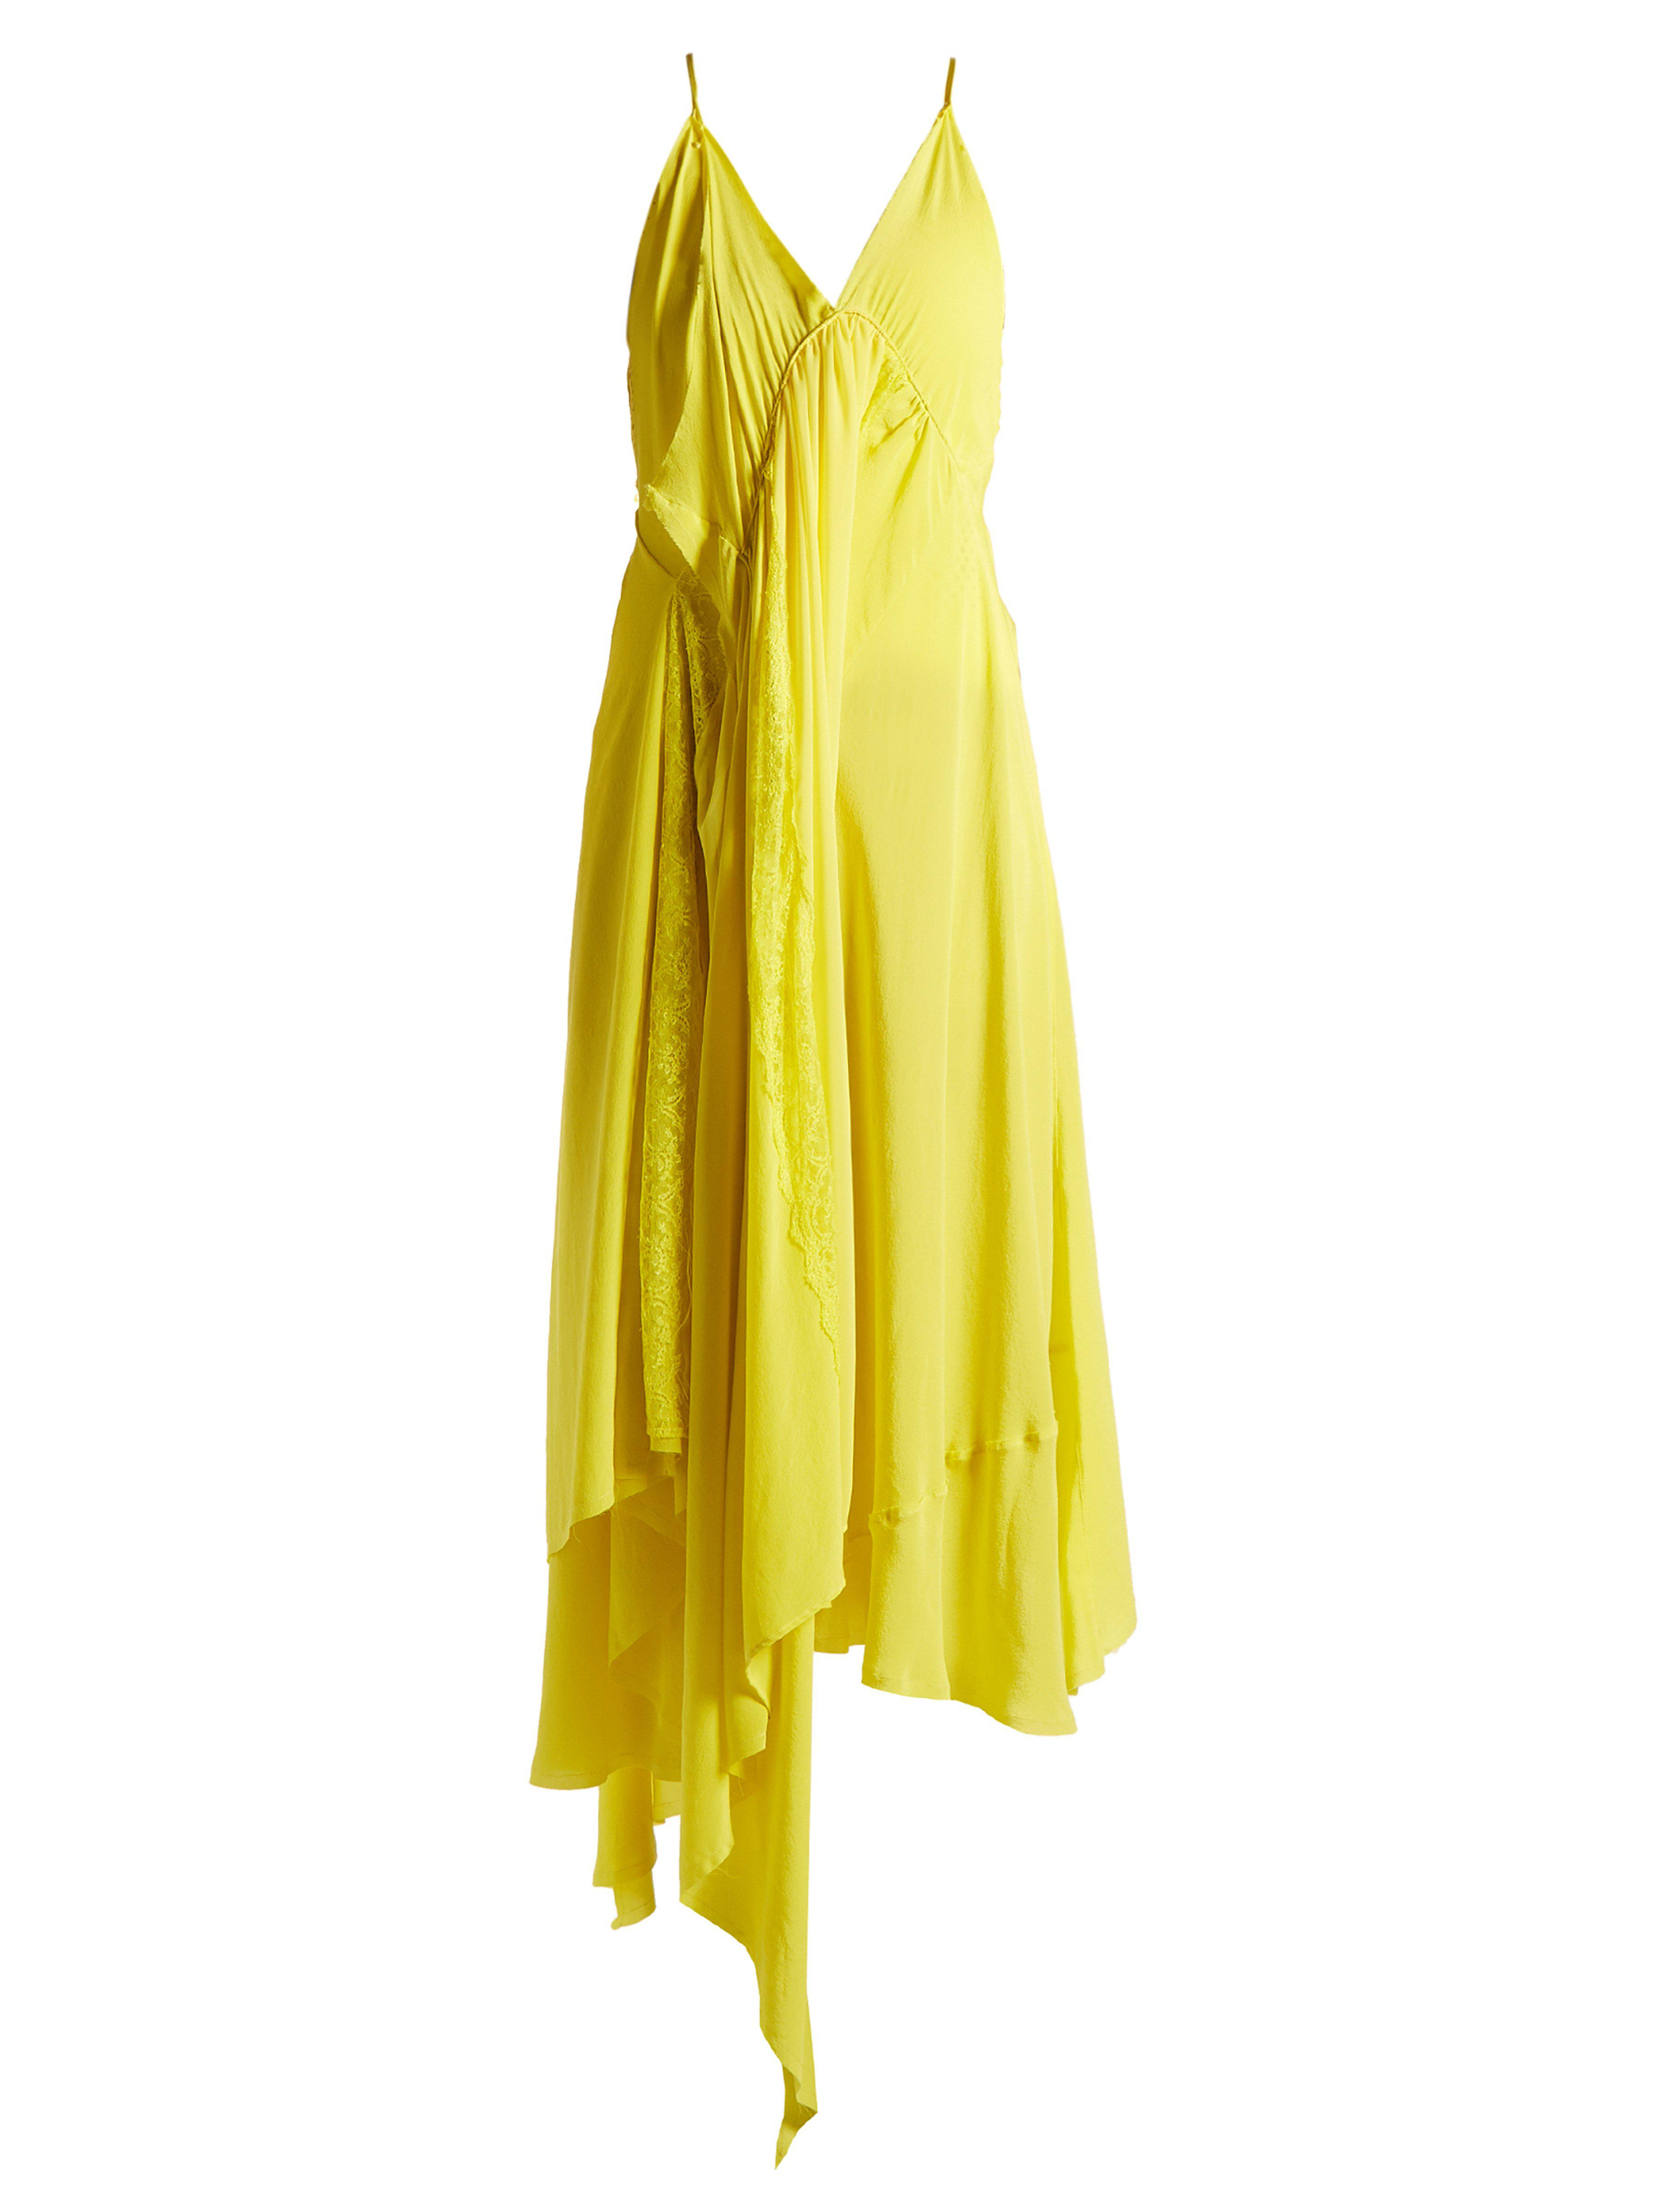 507e79f214c56 Balenciaga Round Neck Draped Silk Crepe Dress in Yellow - Lyst